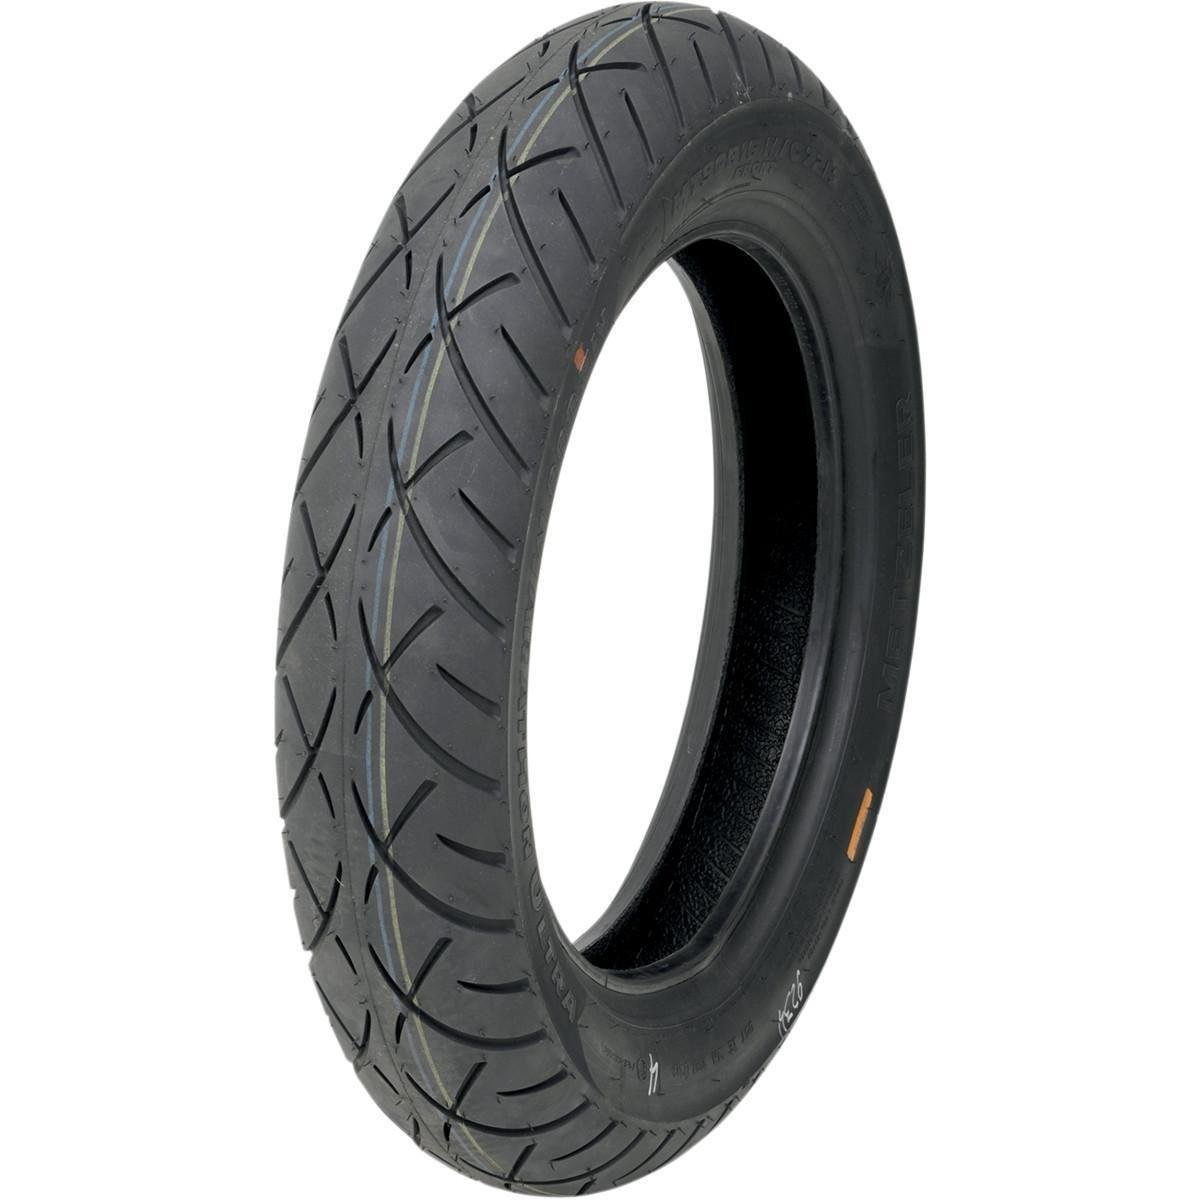 Metzeler ME888 Marathon Ultra Rear Tire - 180/60R16, Position: Rear, Rim Size: 16, Tire Application: Cruiser, Tire Size: 180/60-16, Tire Type: Street, Load Rating: 74, Speed Rating: H, Tire Construction: Bias 2429500